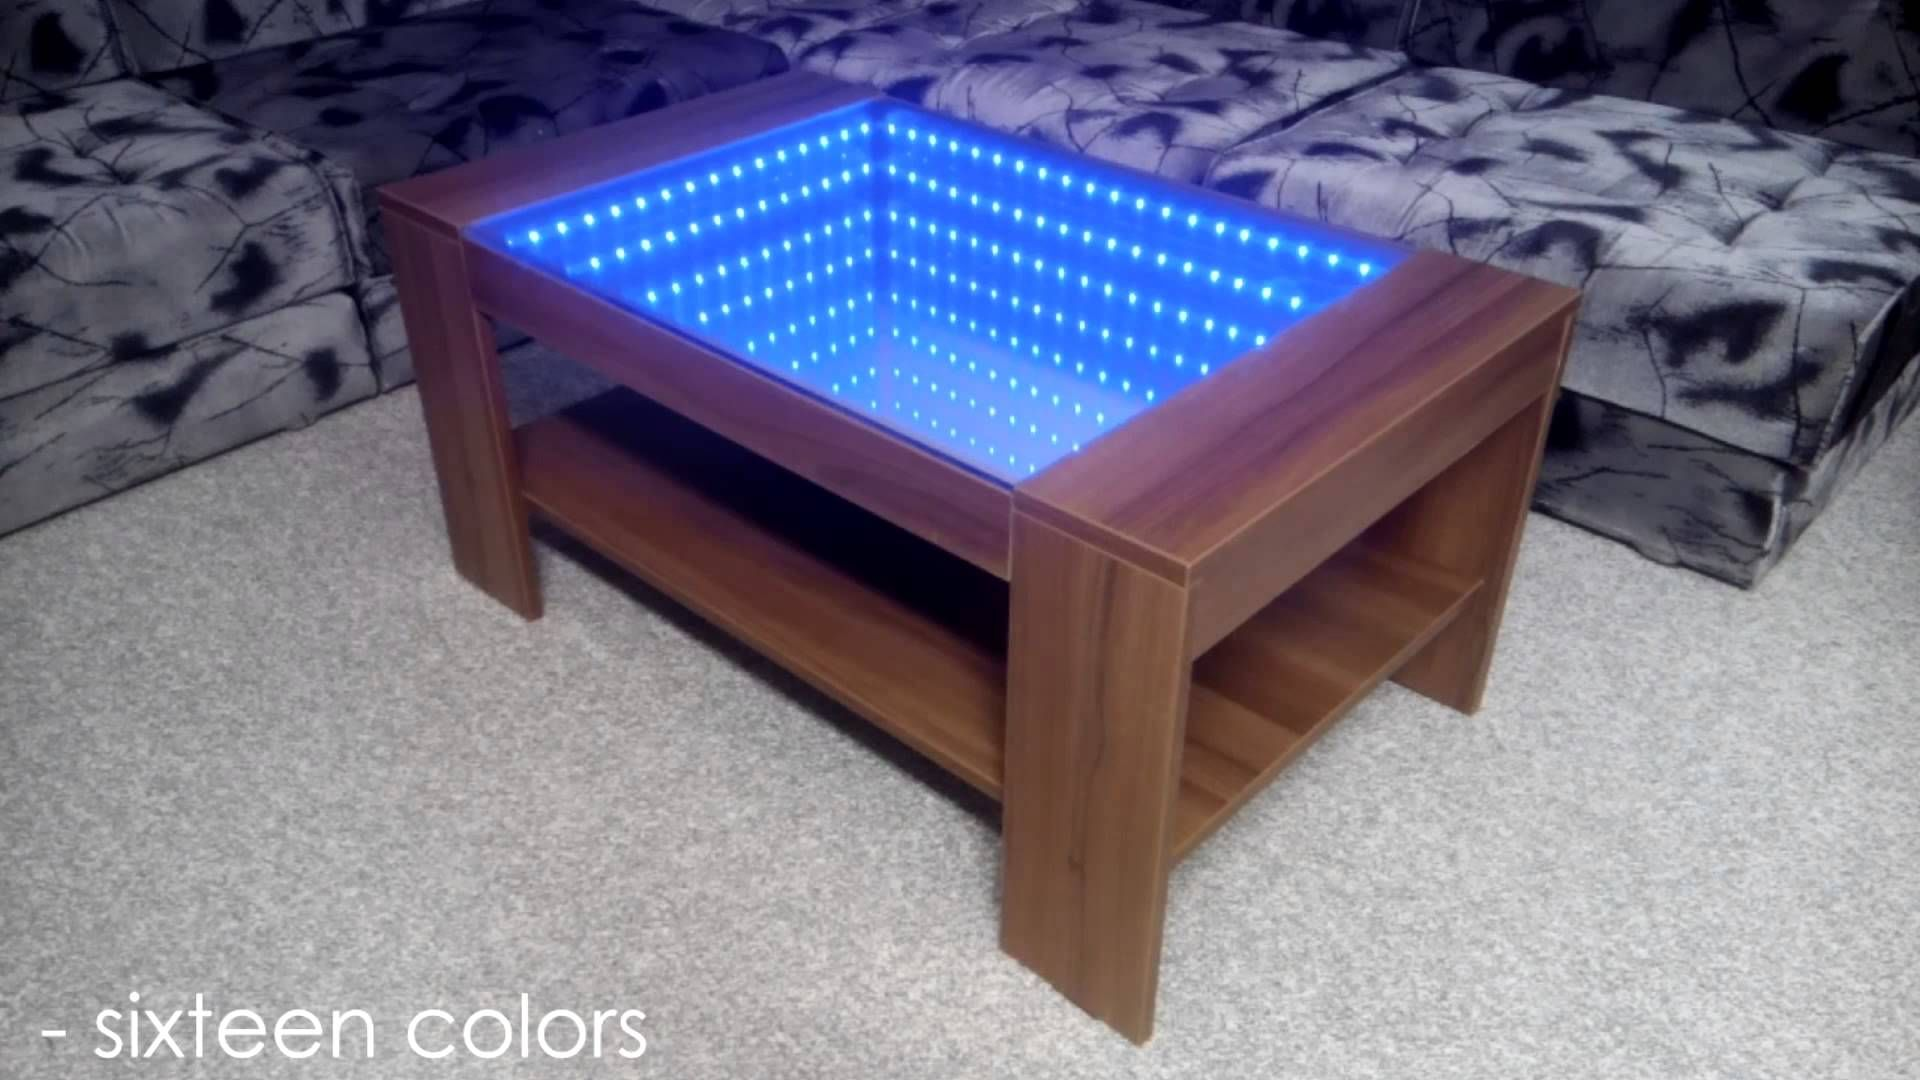 Infinity Mirror Coffee Table Self Made Https Www Djpeter Co Za Https Www Djpeter Co Za Infinity Mirror Table Infinity Mirror Diy Infinity Mirror [ 1080 x 1920 Pixel ]